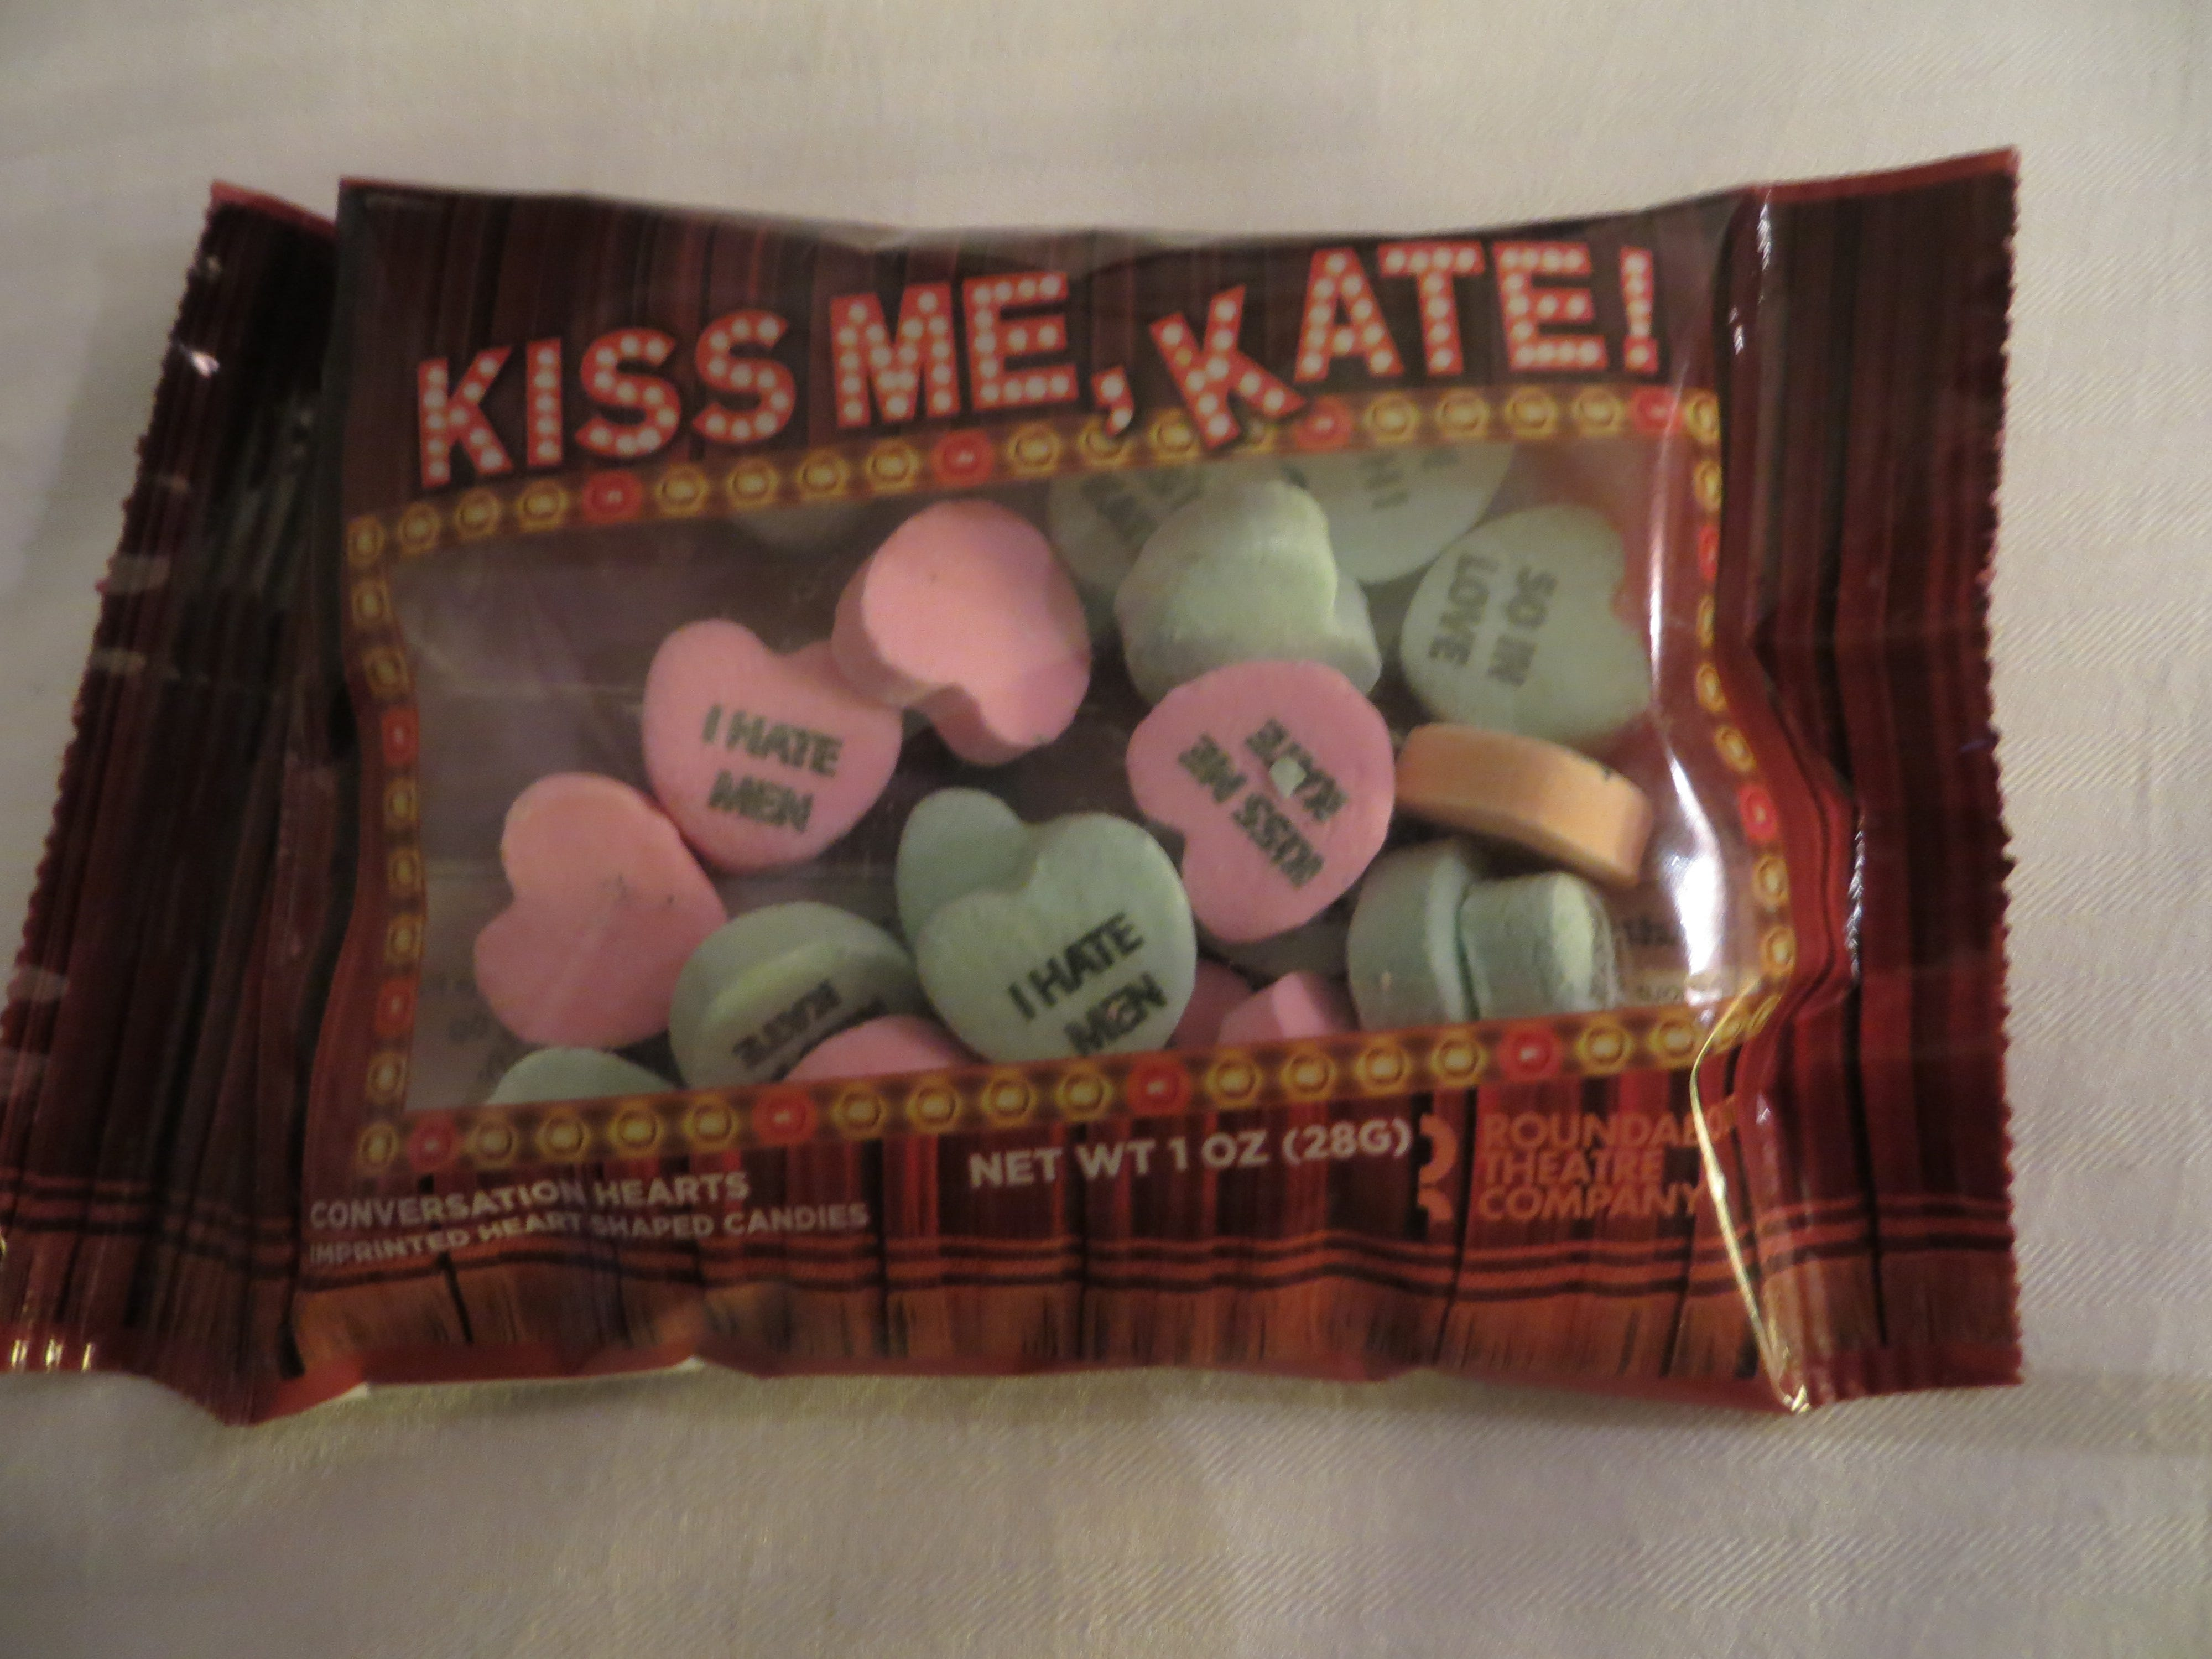 """Kiss Me, Kate"" candy hearts from Roundabout Theatre Company's upcoming revival at BroadwayCon 2019, held Jan. 11 to 13, 2019, at the New York Hilton Midtown in Manhattan."